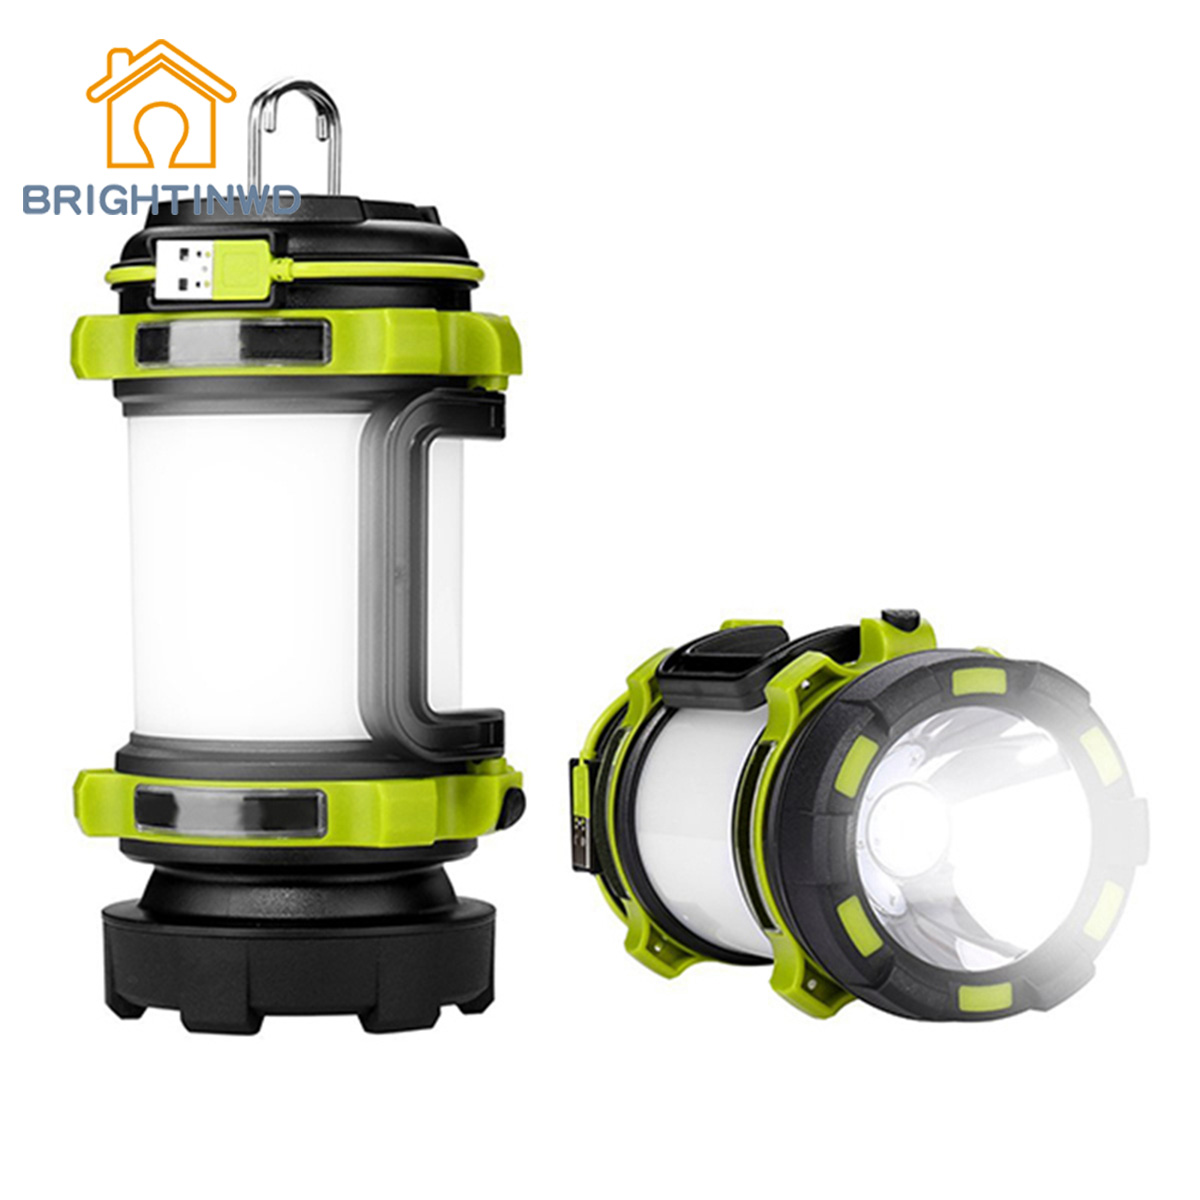 BRIGHTINWD LED Camping Lantern Spotlight Flashlight Waterproof Rechargeable 2600mAh Power Bank DC5V Hiking Emergency Tent 30m underwater fish cameras finder sea real time live underwater ice video fishfinder fishing camera ir night vision 4 3 screen